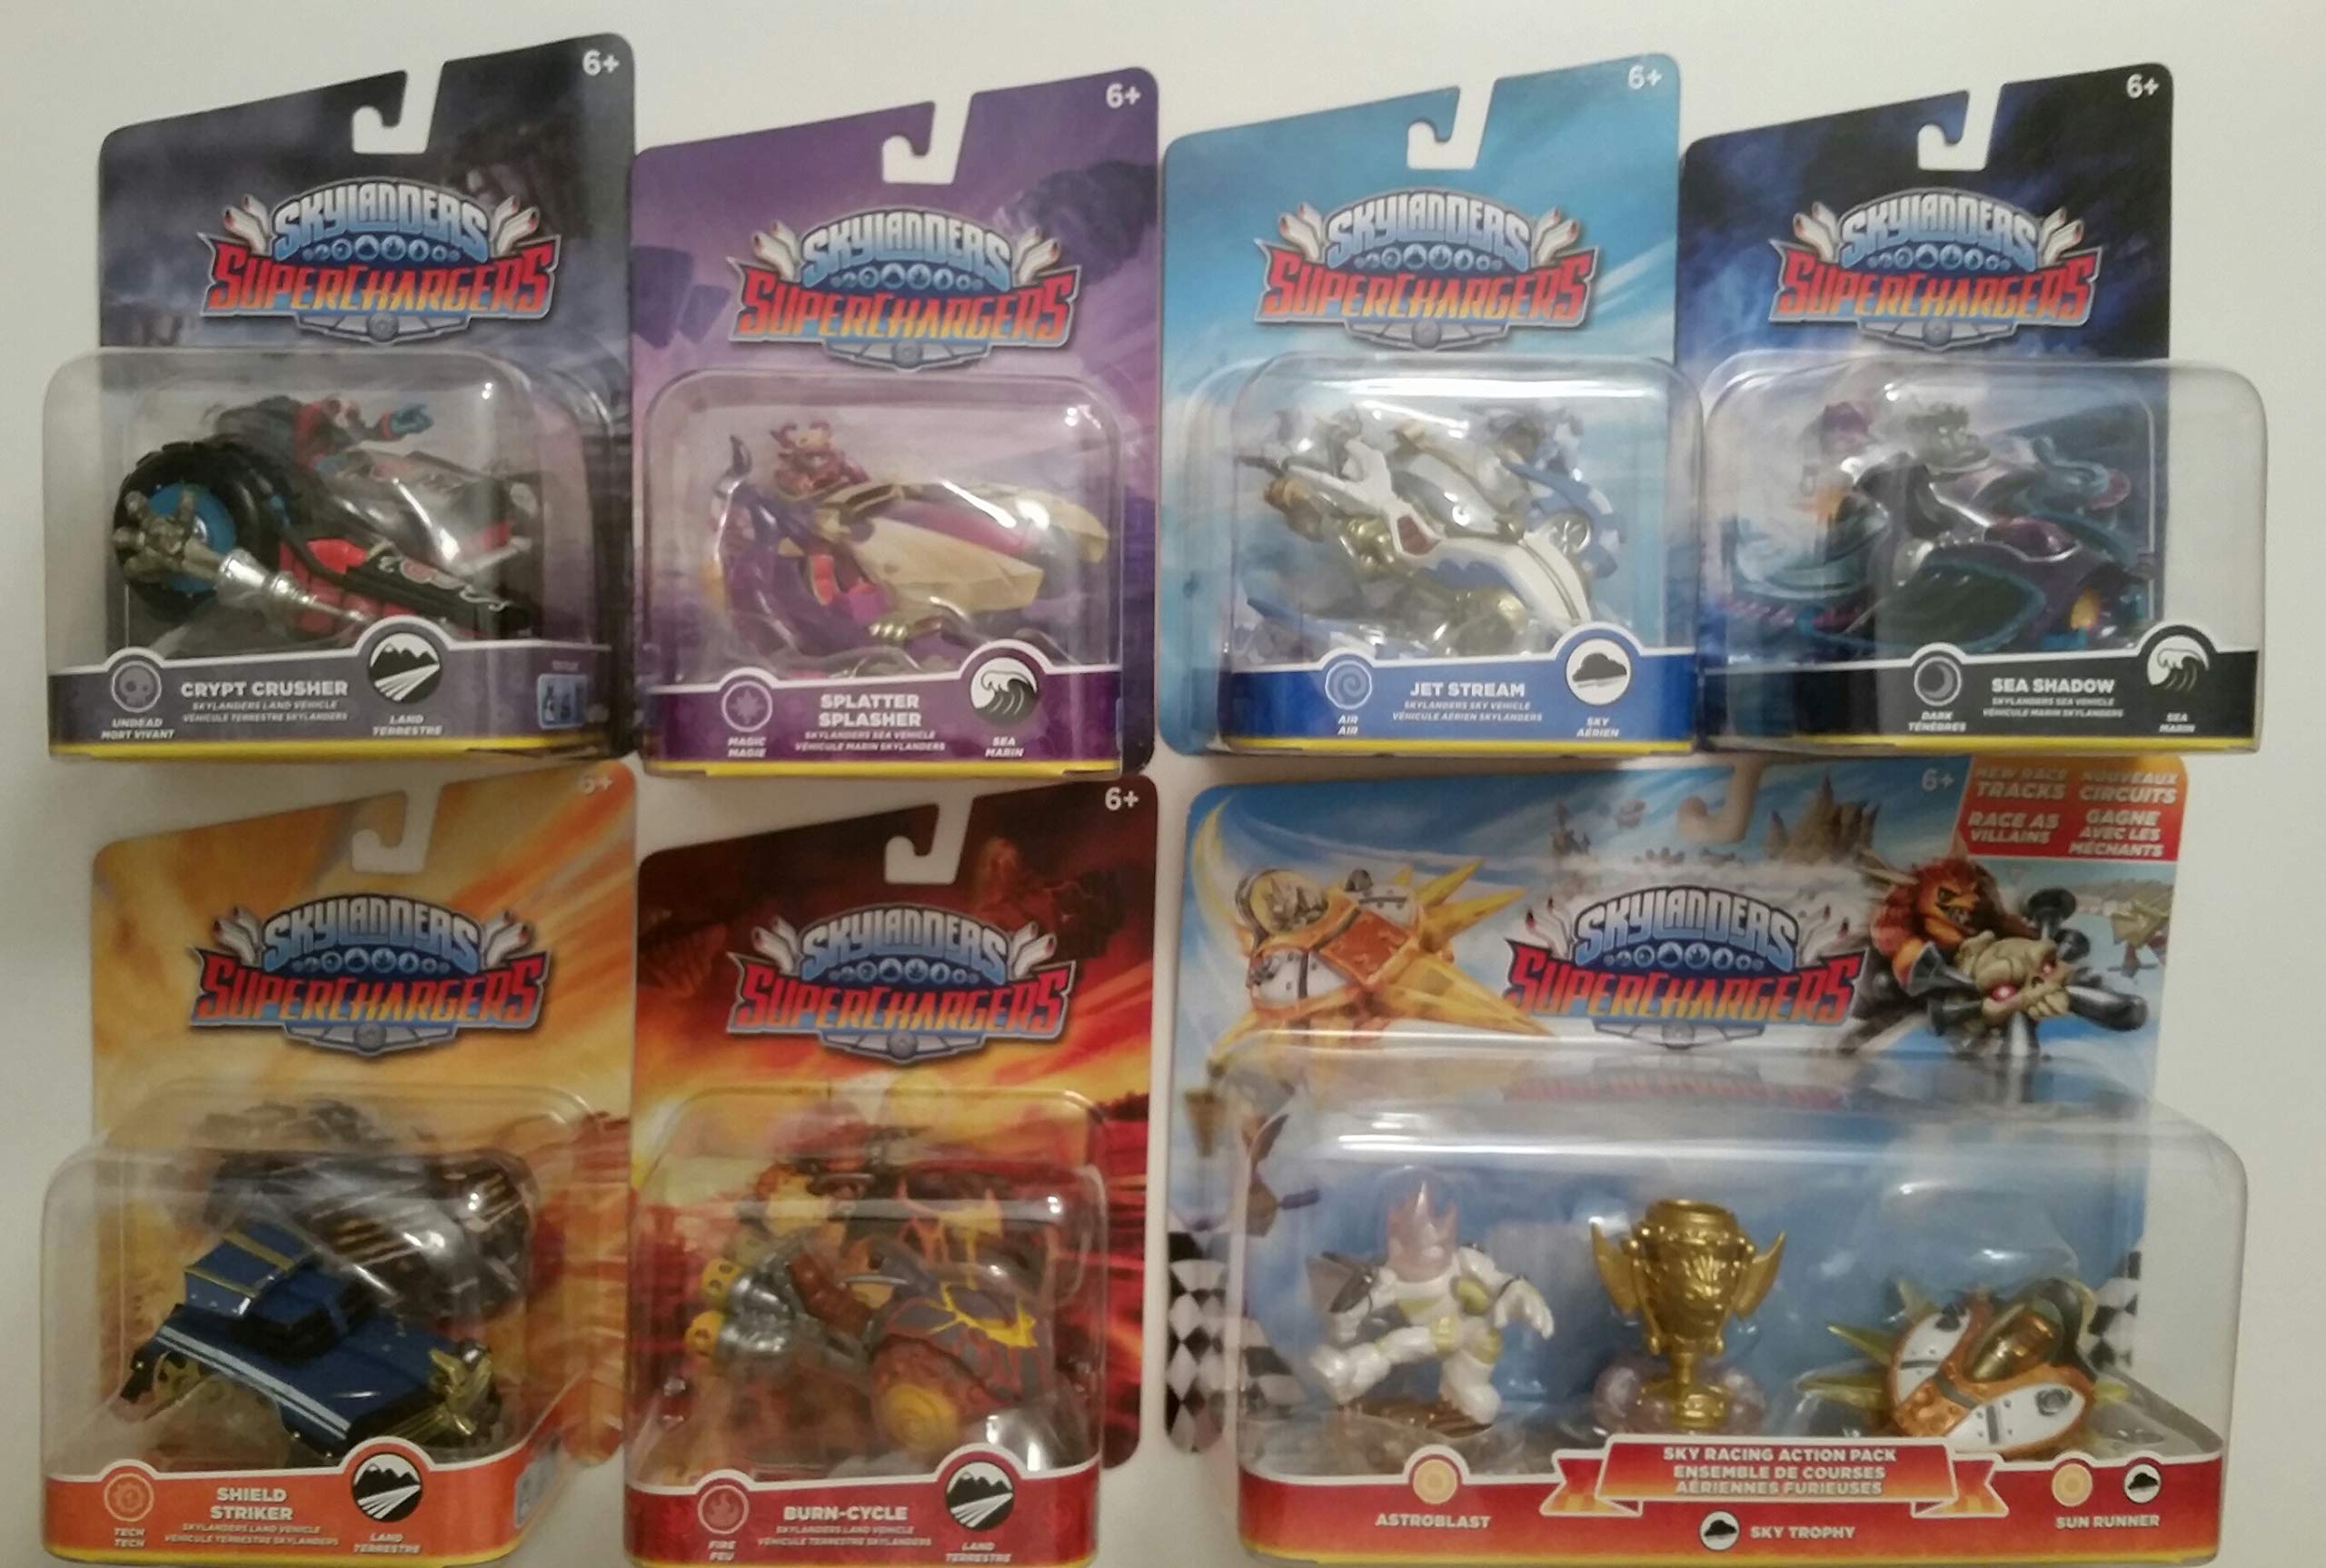 Skylanders SuperChargers 7 Pack Vehicle Starter Bundle! 7 Vehicles, 1 Trophy, 1 Character: Crypt Crusher, Sea Shadow,Jet Stream, Splatter Splasher,Shield Striker, Burn -Cycle, and Sky Racing Pack